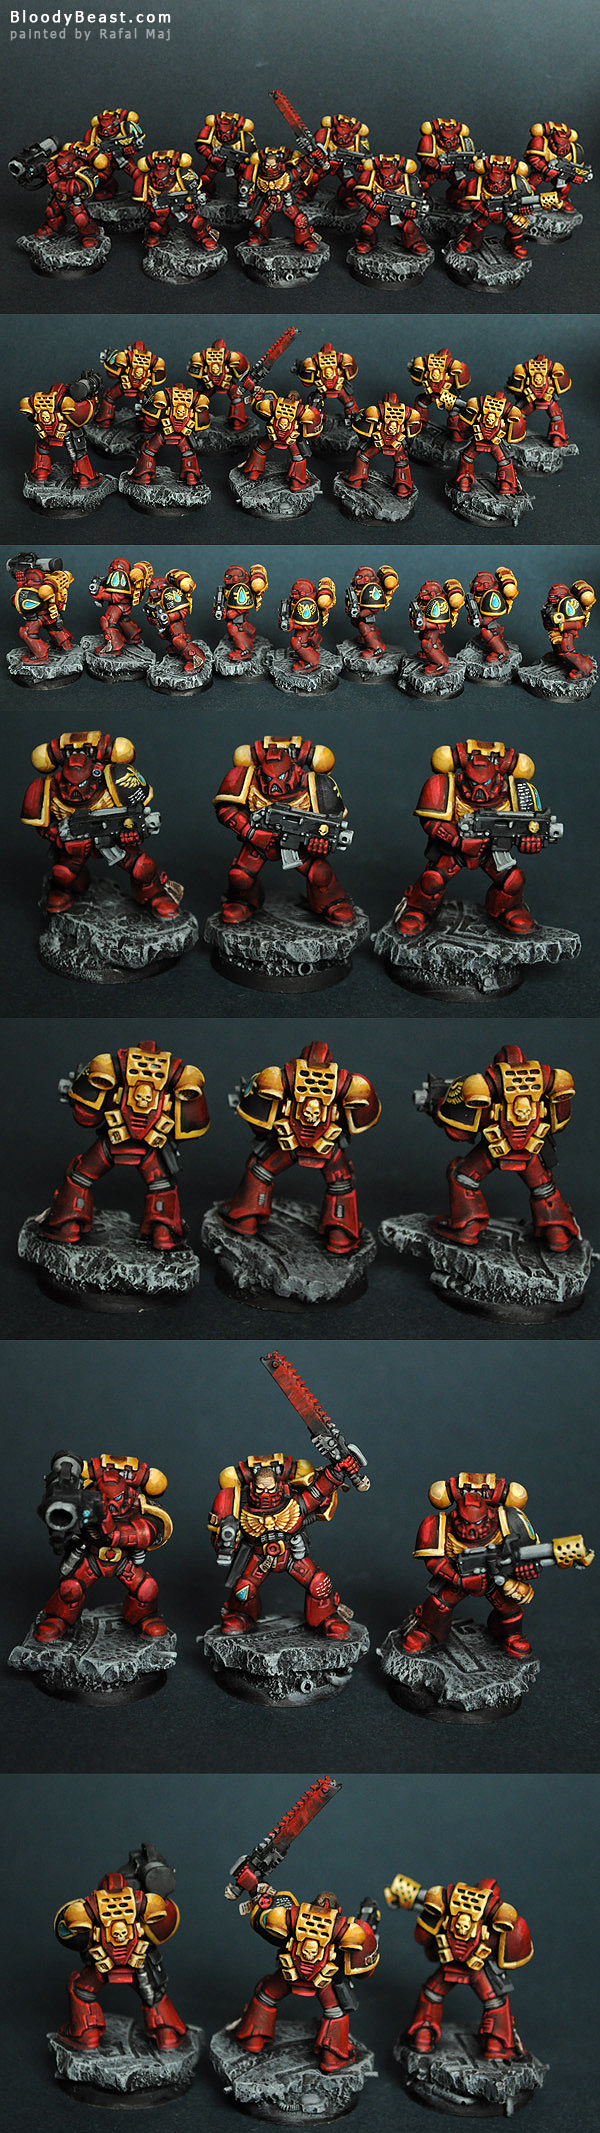 Blood Angels Space Marines Tactical Squad painted by Rafal Maj (BloodyBeast.com)